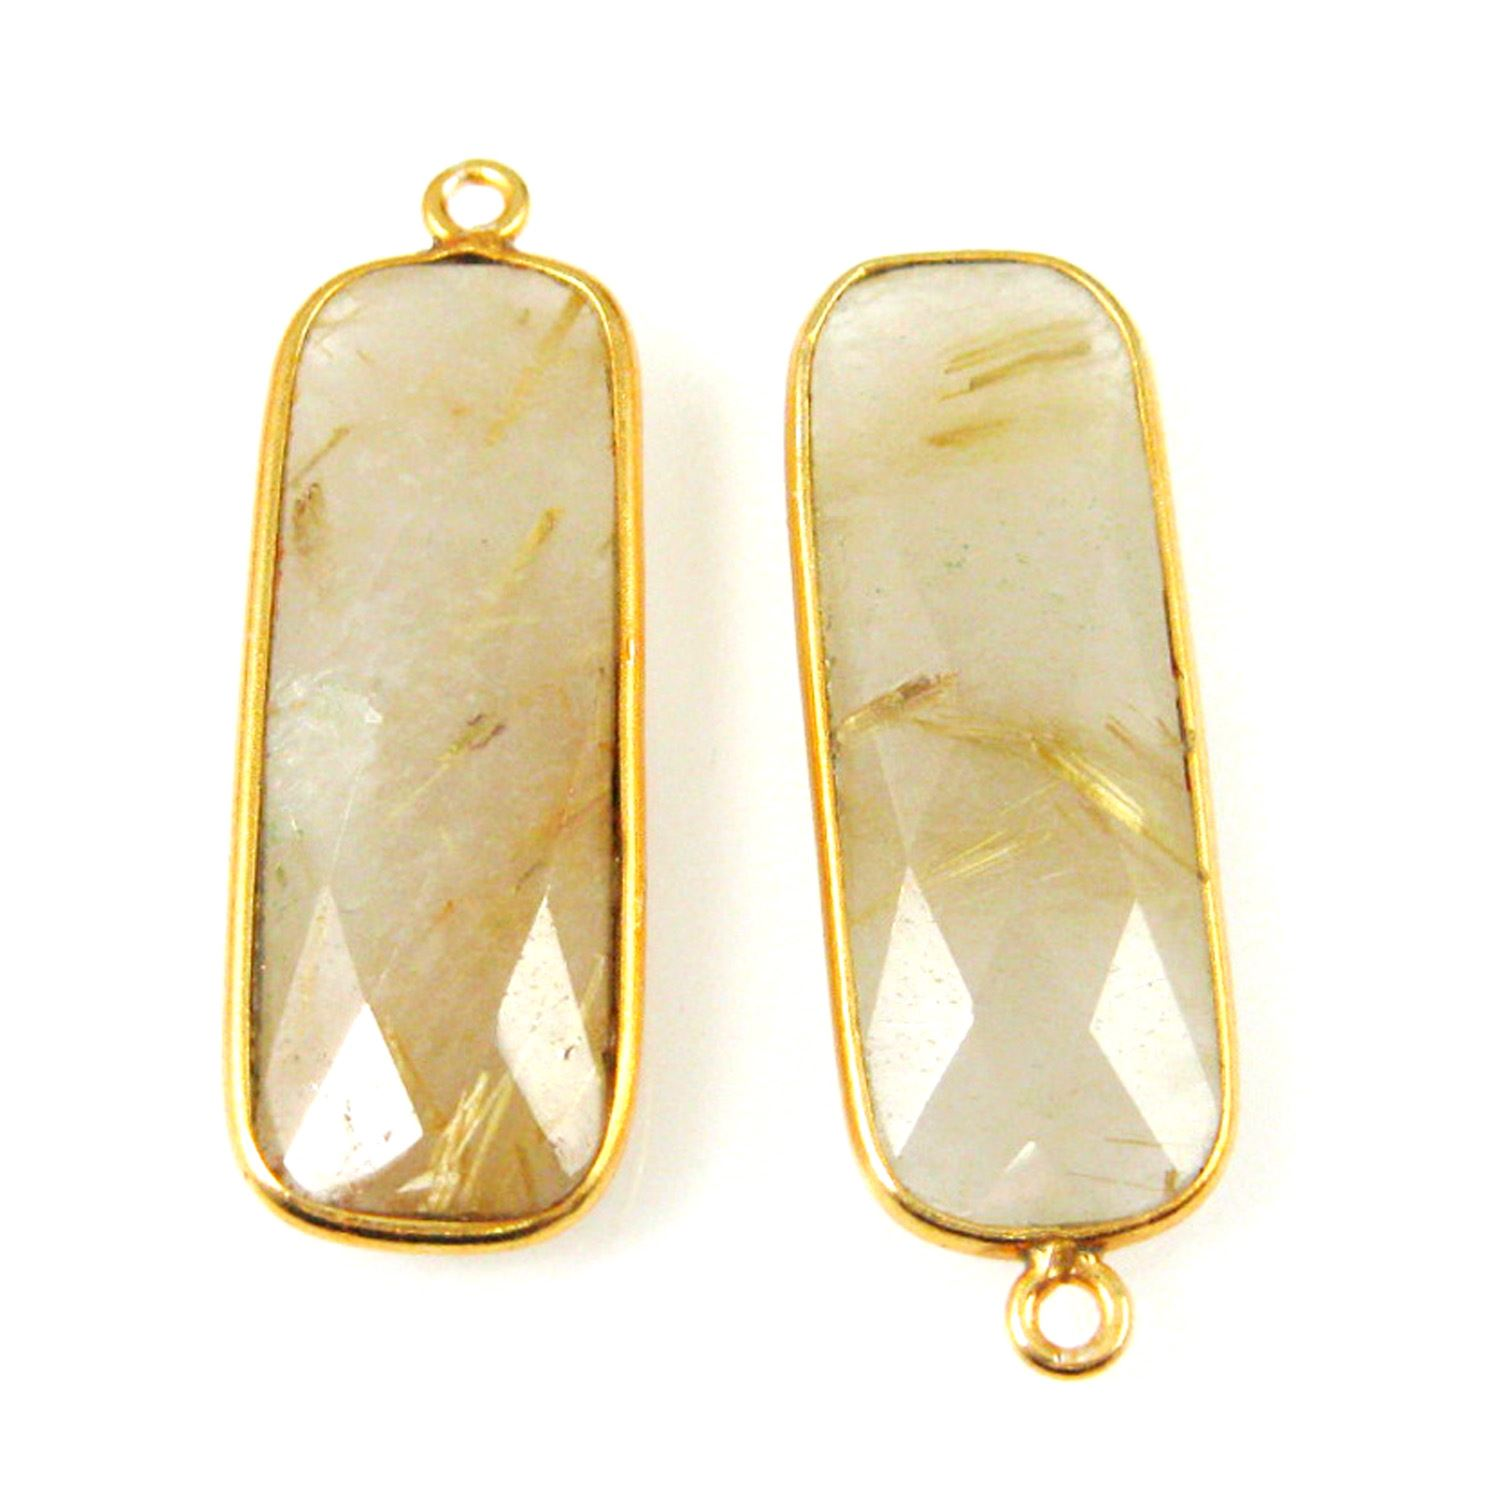 Bezel Charm Pendant-Vermeil Charm-Gold Plated -Gold Rutilated -Elongated Rectangle Shape-34 by 11mm (Sold per 2 pieces)